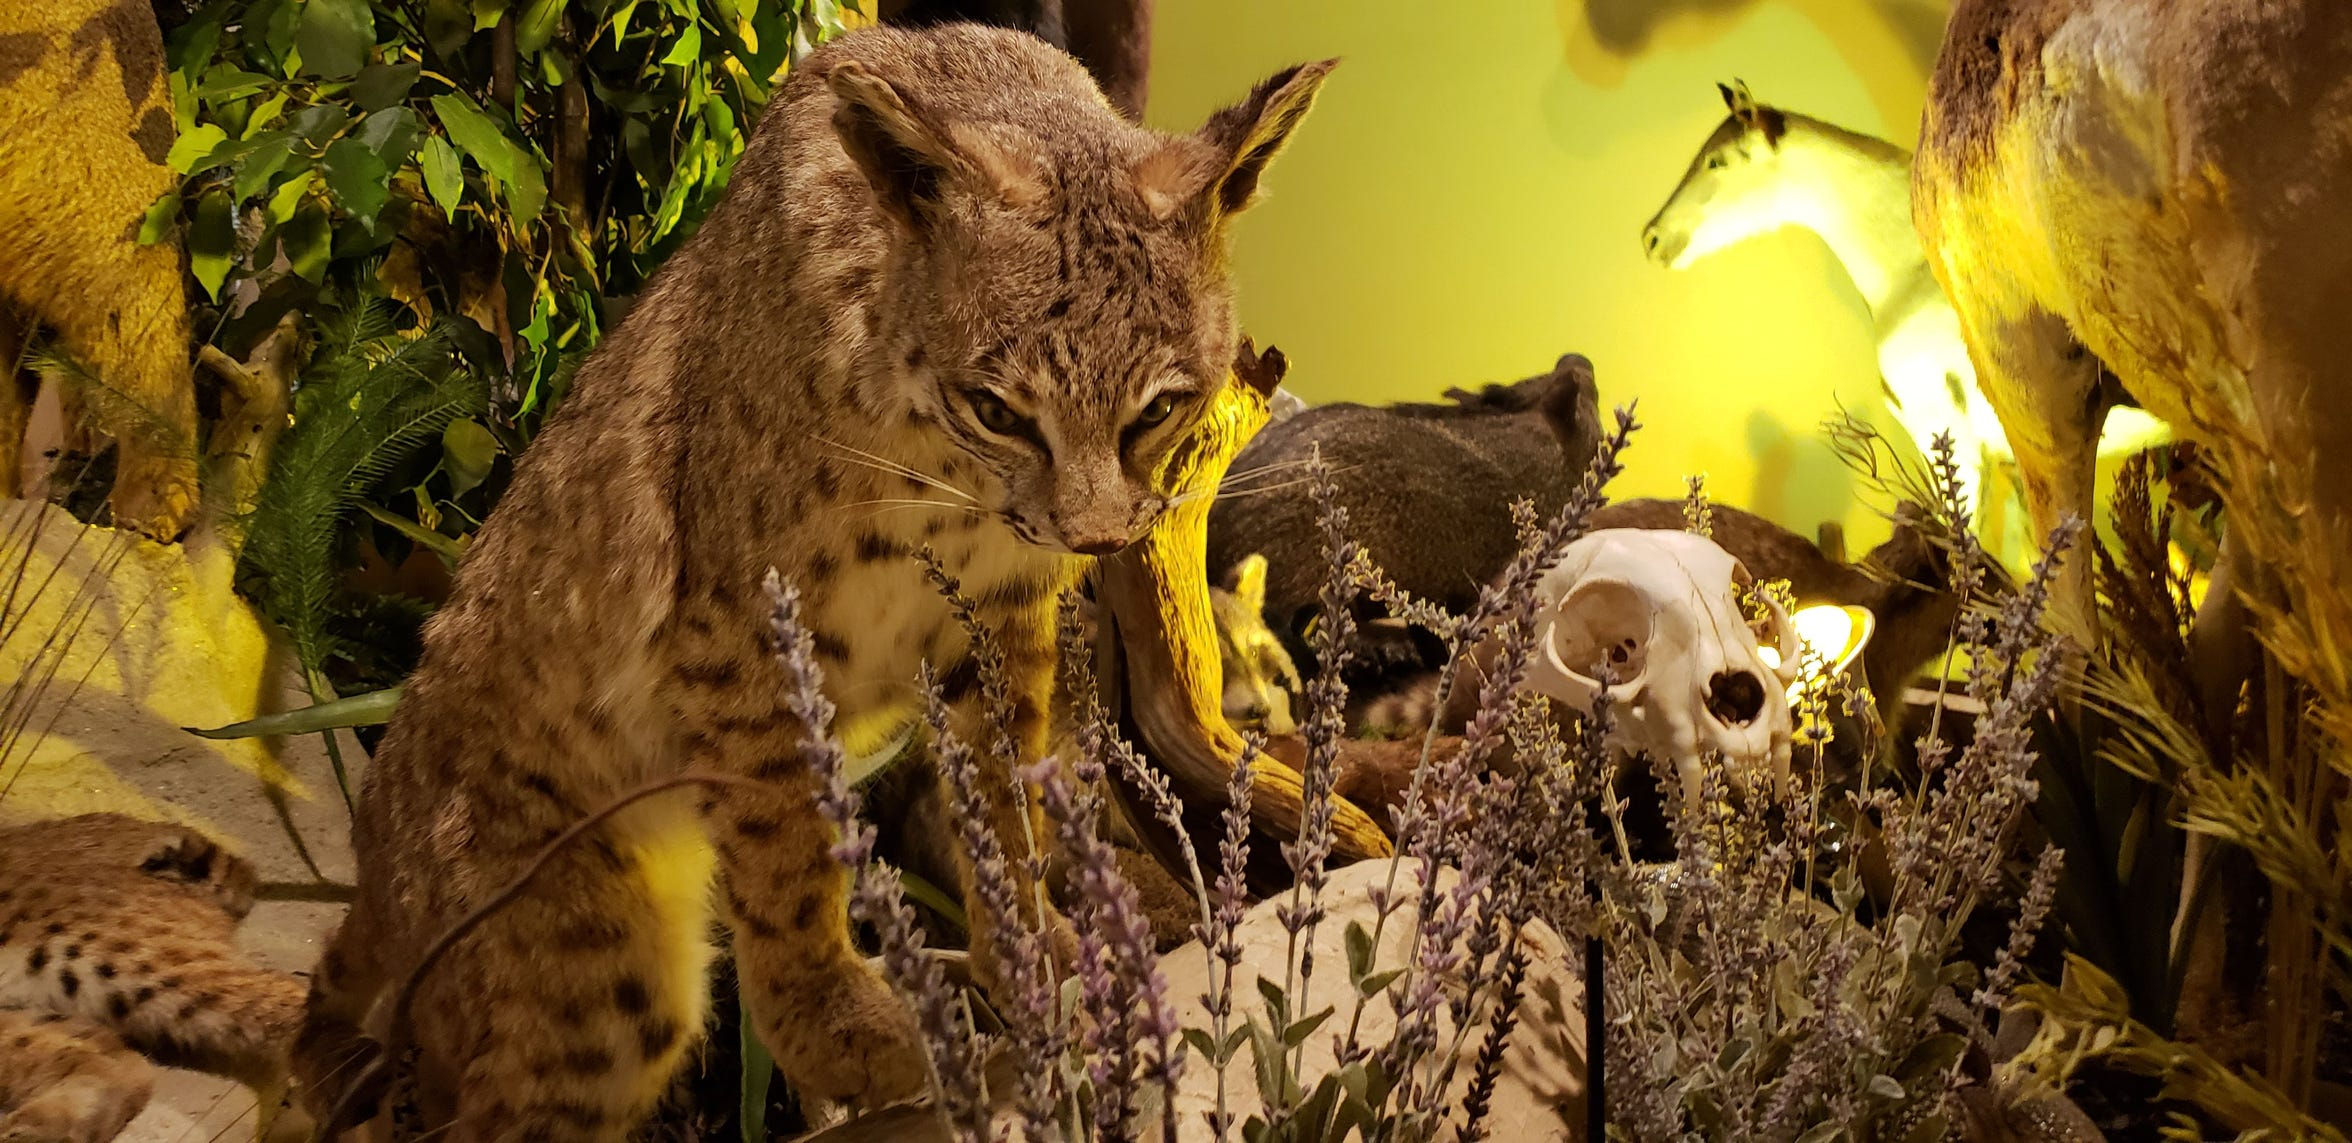 An example of some of the elaborate taxidermy and skeletal preservation in the Whiteside museum's Texas Wildlife portion.